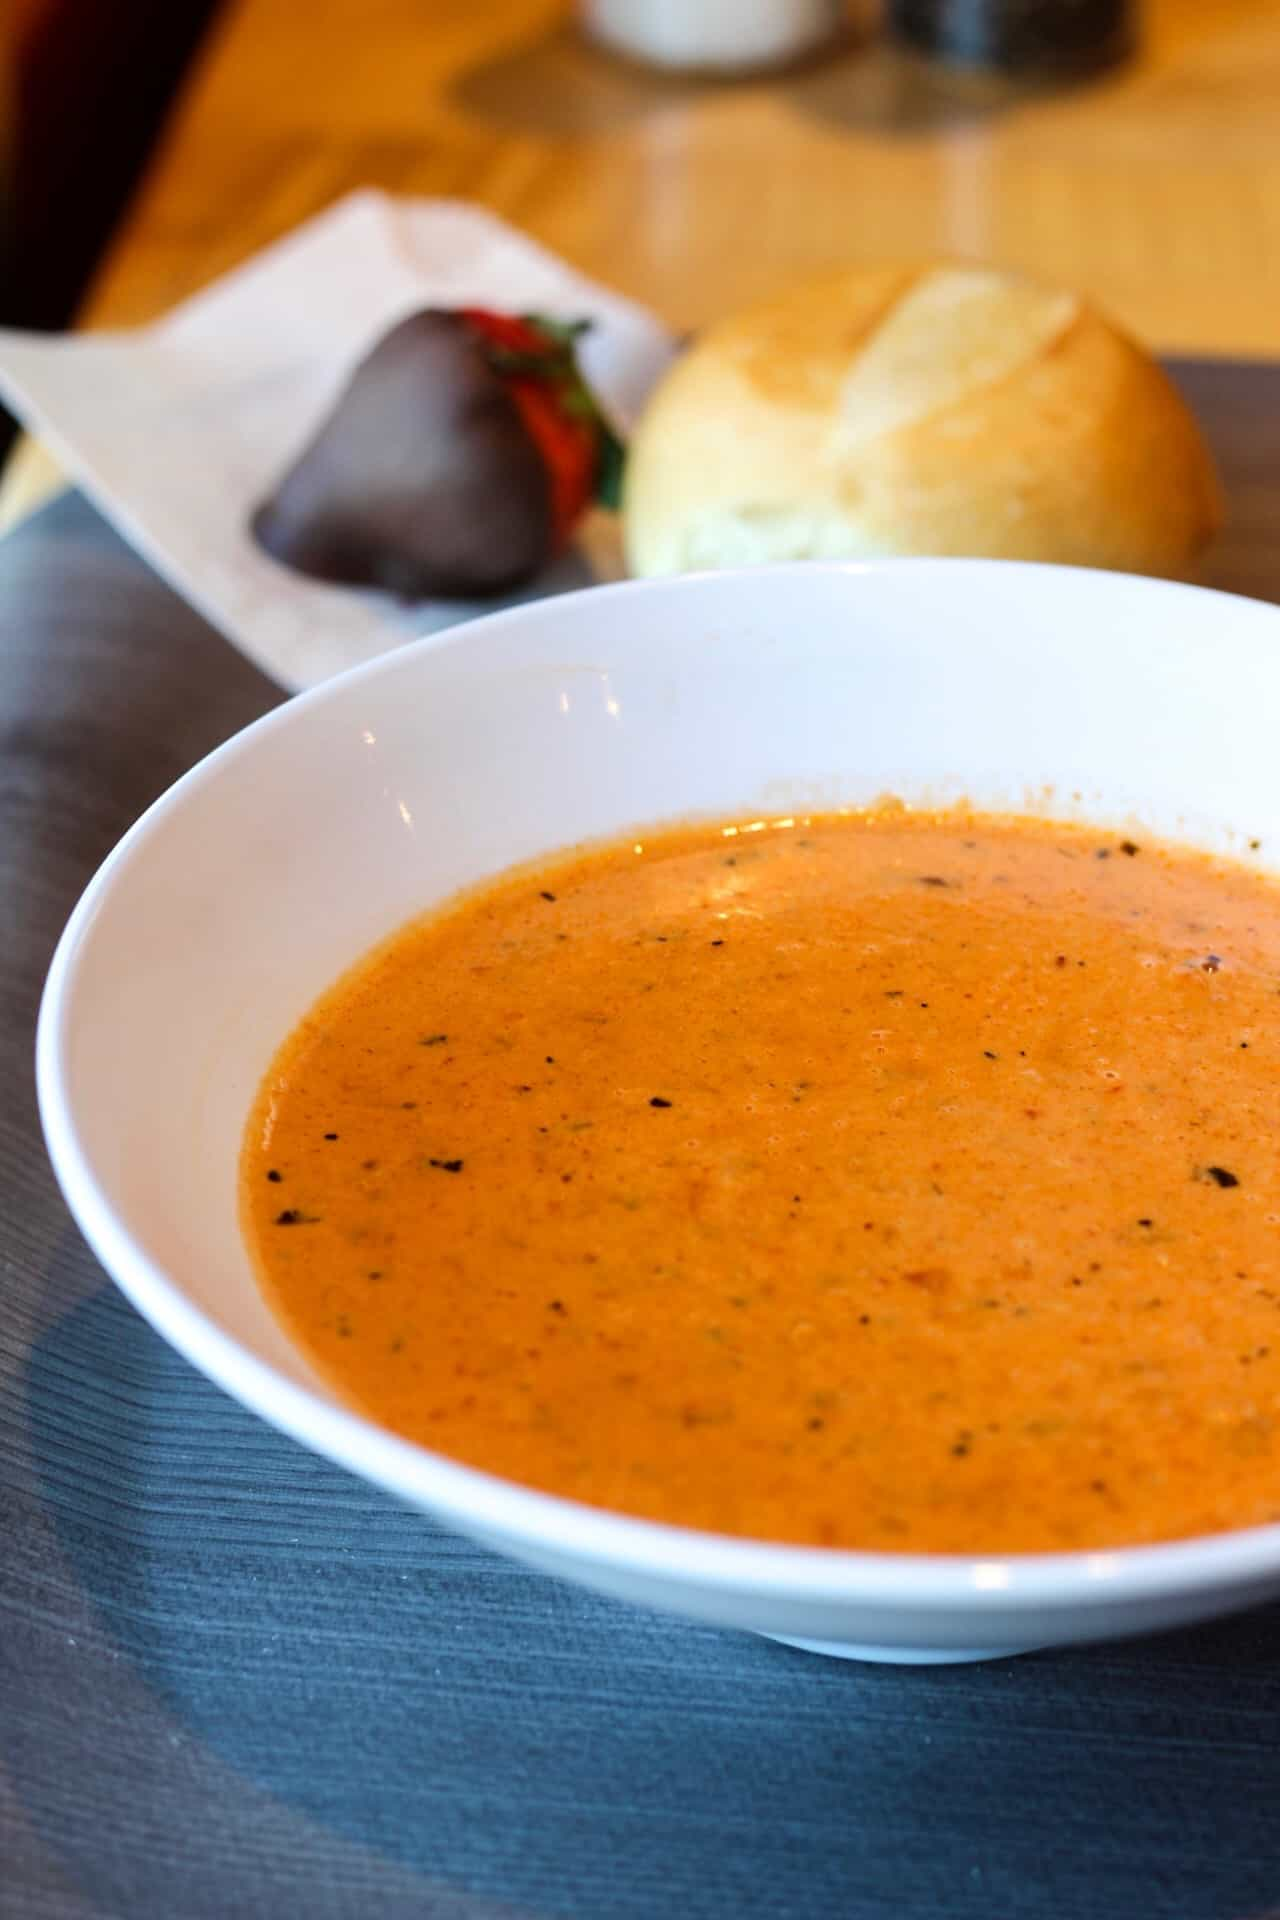 A collection of restaurants that serve the best soup in Salt Lake City, Utah! From clam chowder to chicken noodle to french onion, we have you covered.